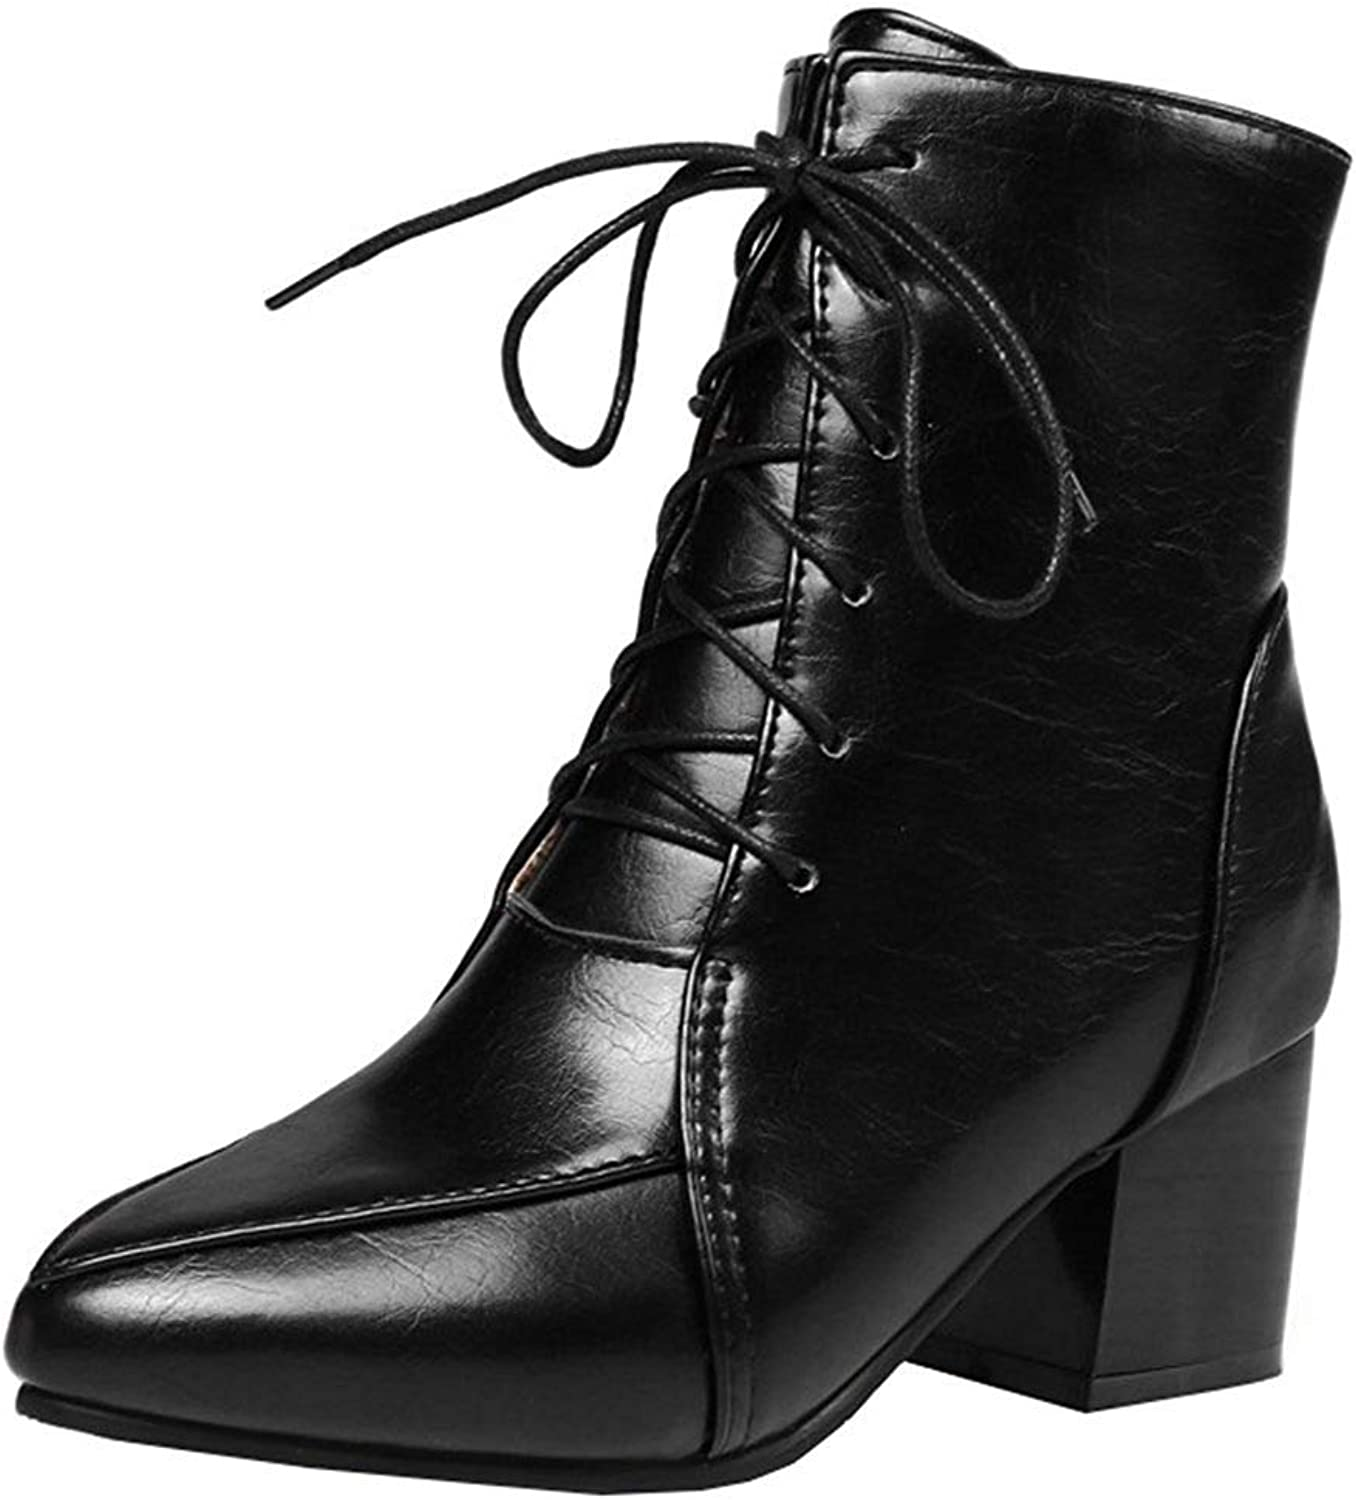 Gcanwea Women's Trendy Stacked Block Medium Heel Lace Up Ankle Booties Pointed Toe Short Boots with Side Zipper Black 4 M US